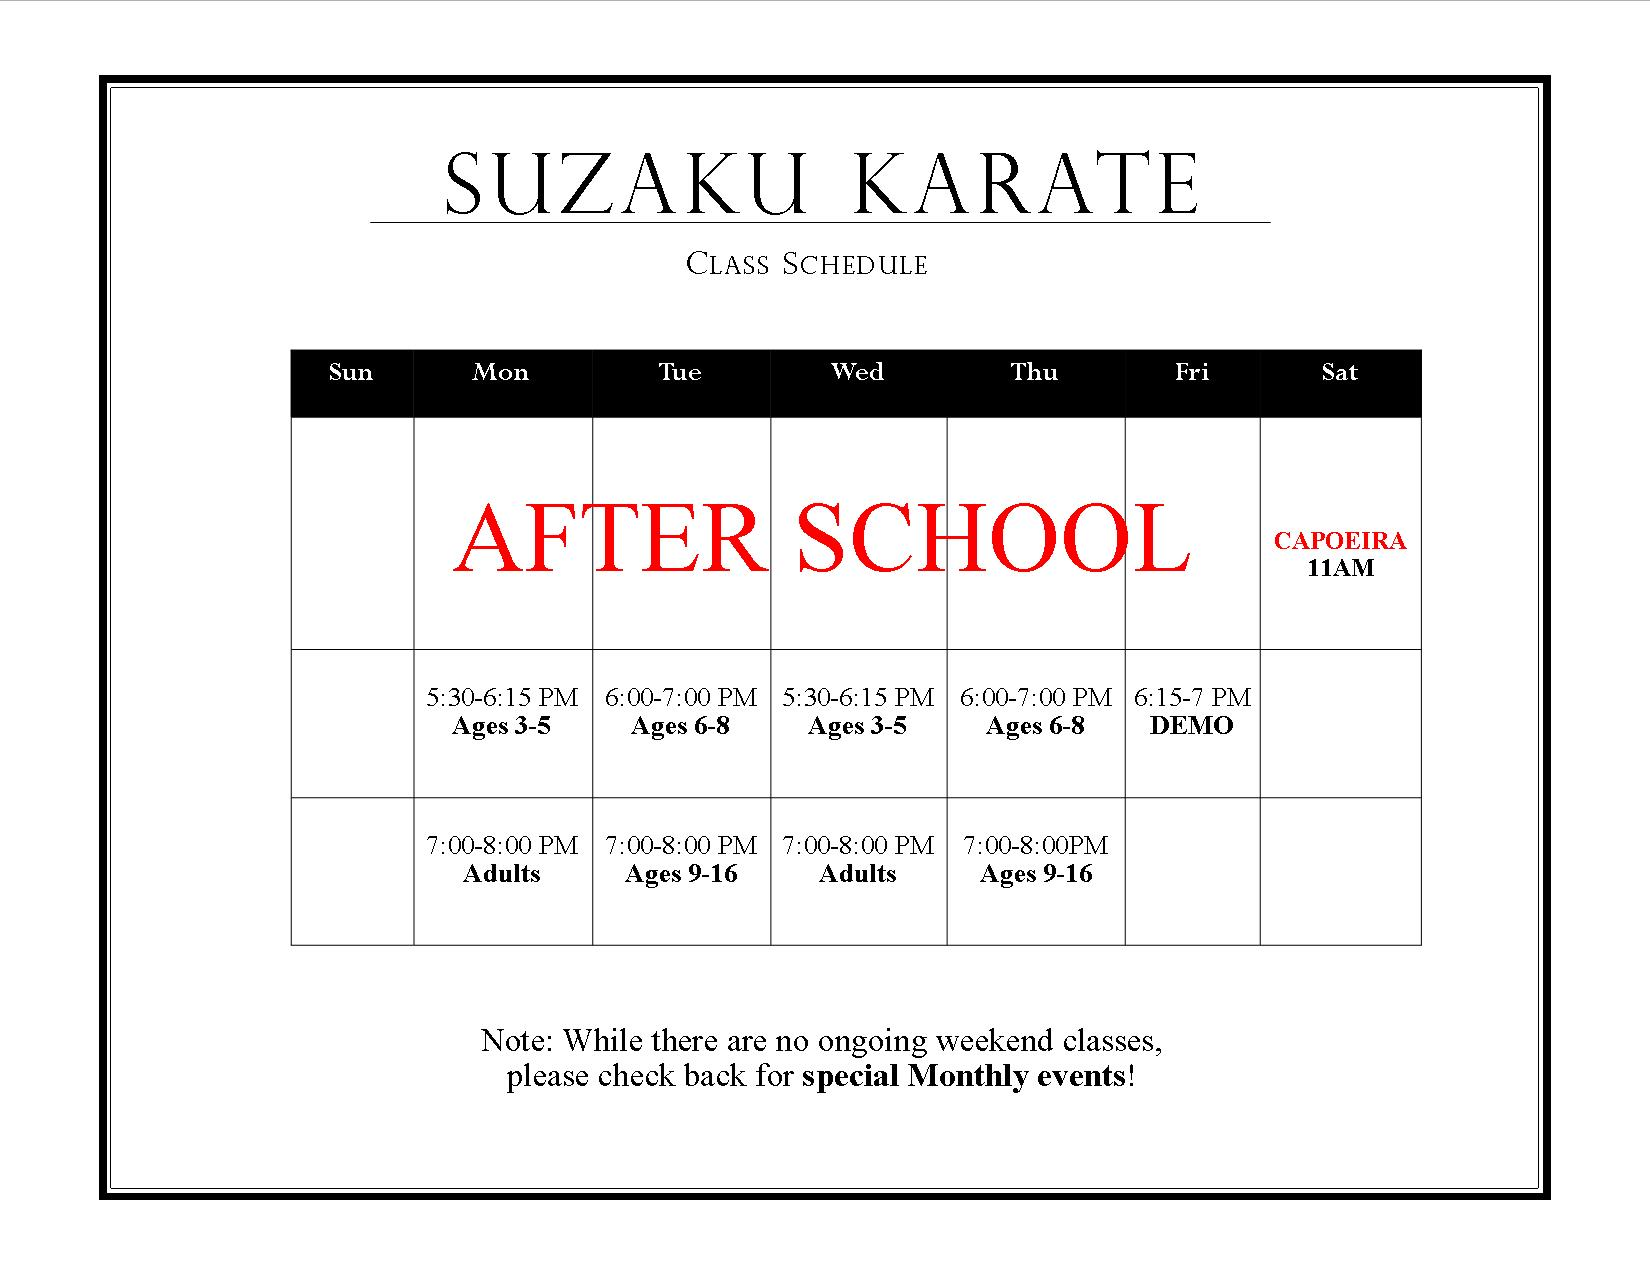 Suzaku Karate Class Schedule AFTER SCHOOL 2017-18 JPG.jpg